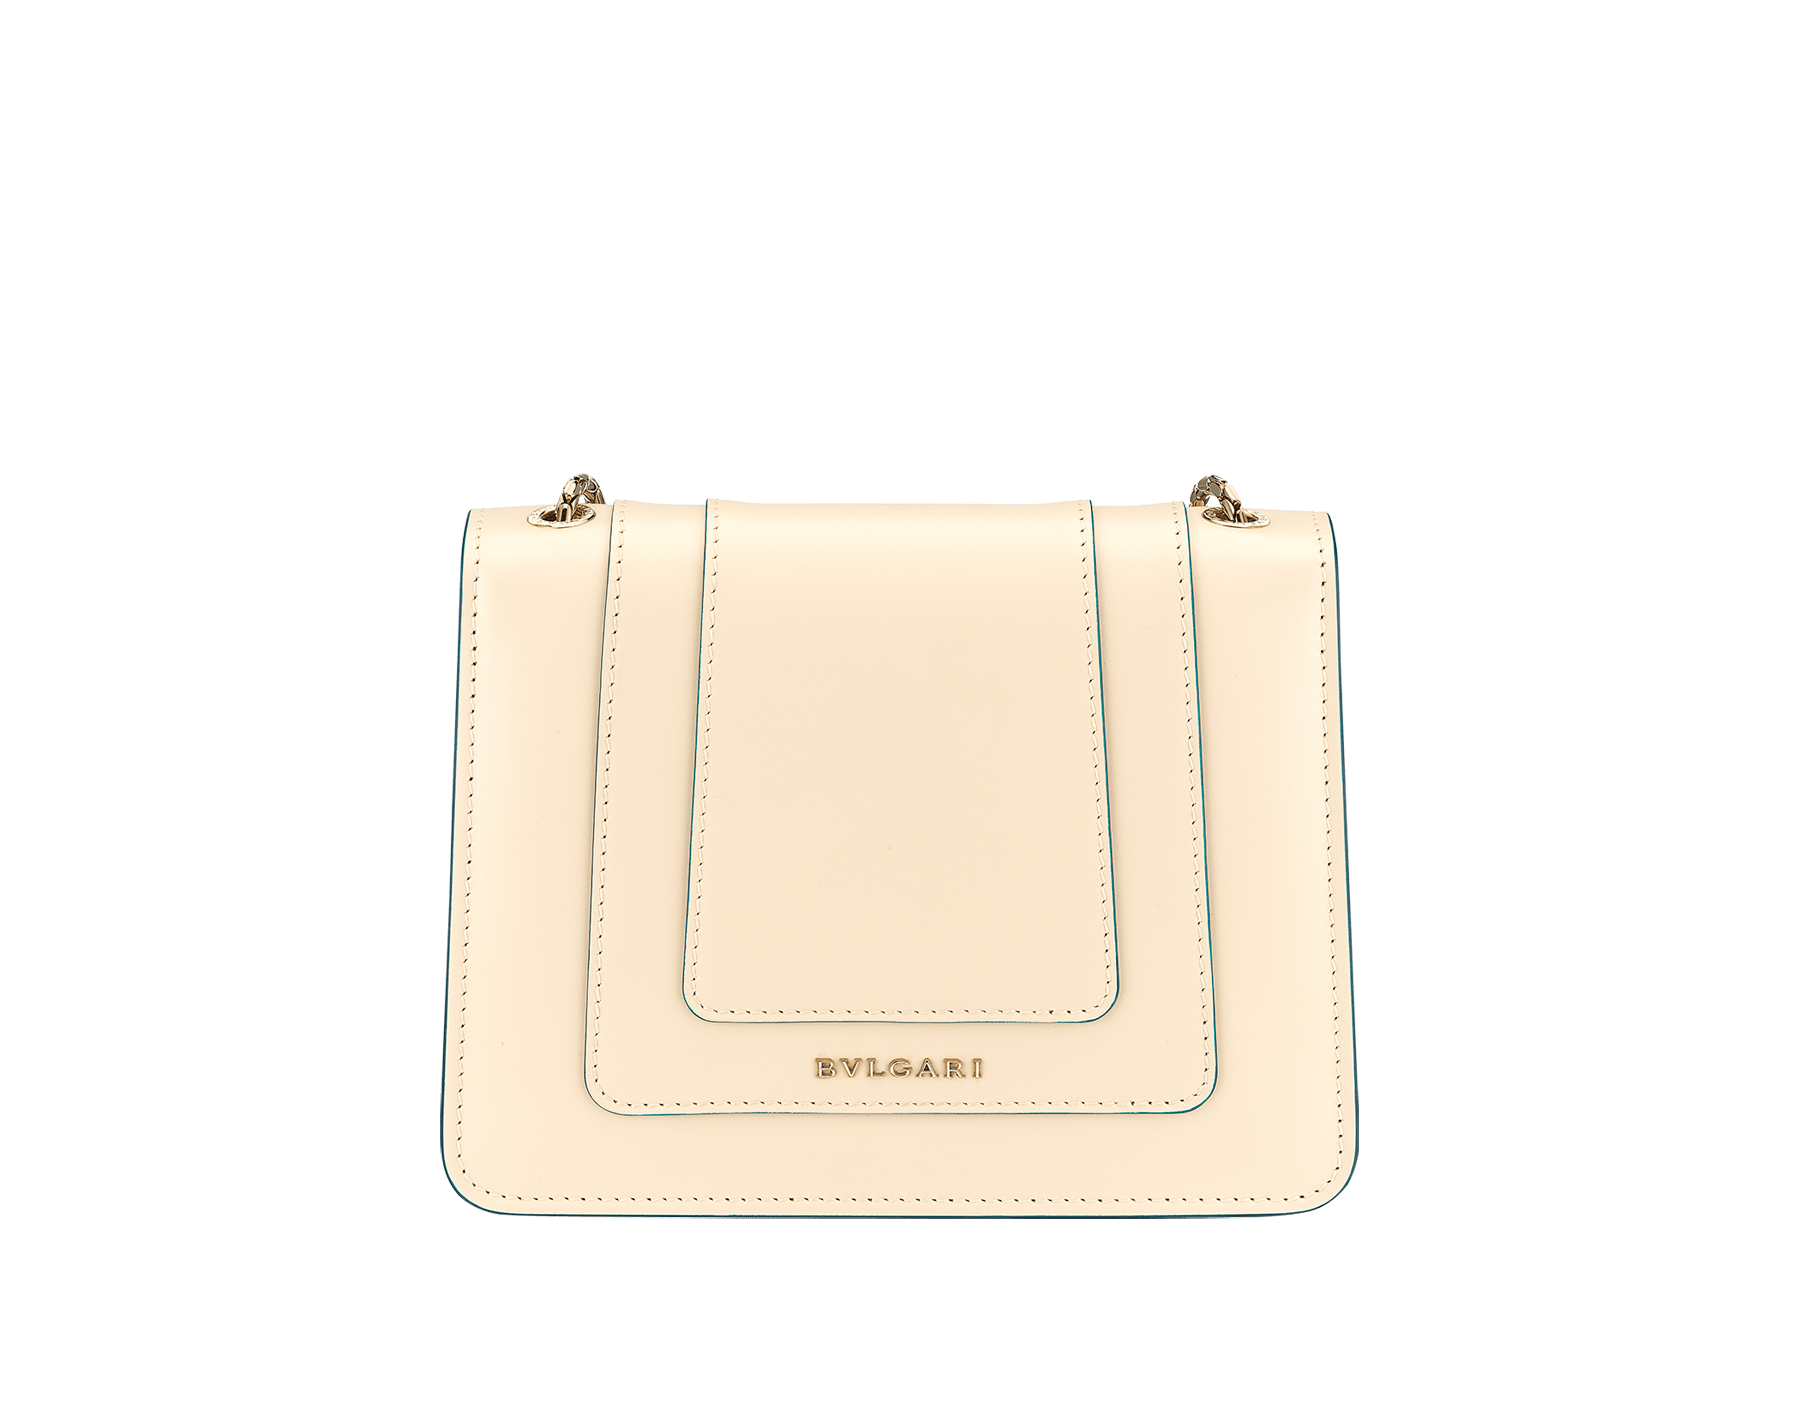 """""""Serpenti Forever"""" crossbody bag in peach calf leather with Pink Spinel fuchsia grosgrain inner lining. Iconic snakehead closure in light gold-plated brass enriched with black and white agate enamel and green malachite eyes. 422-CLb image 3"""